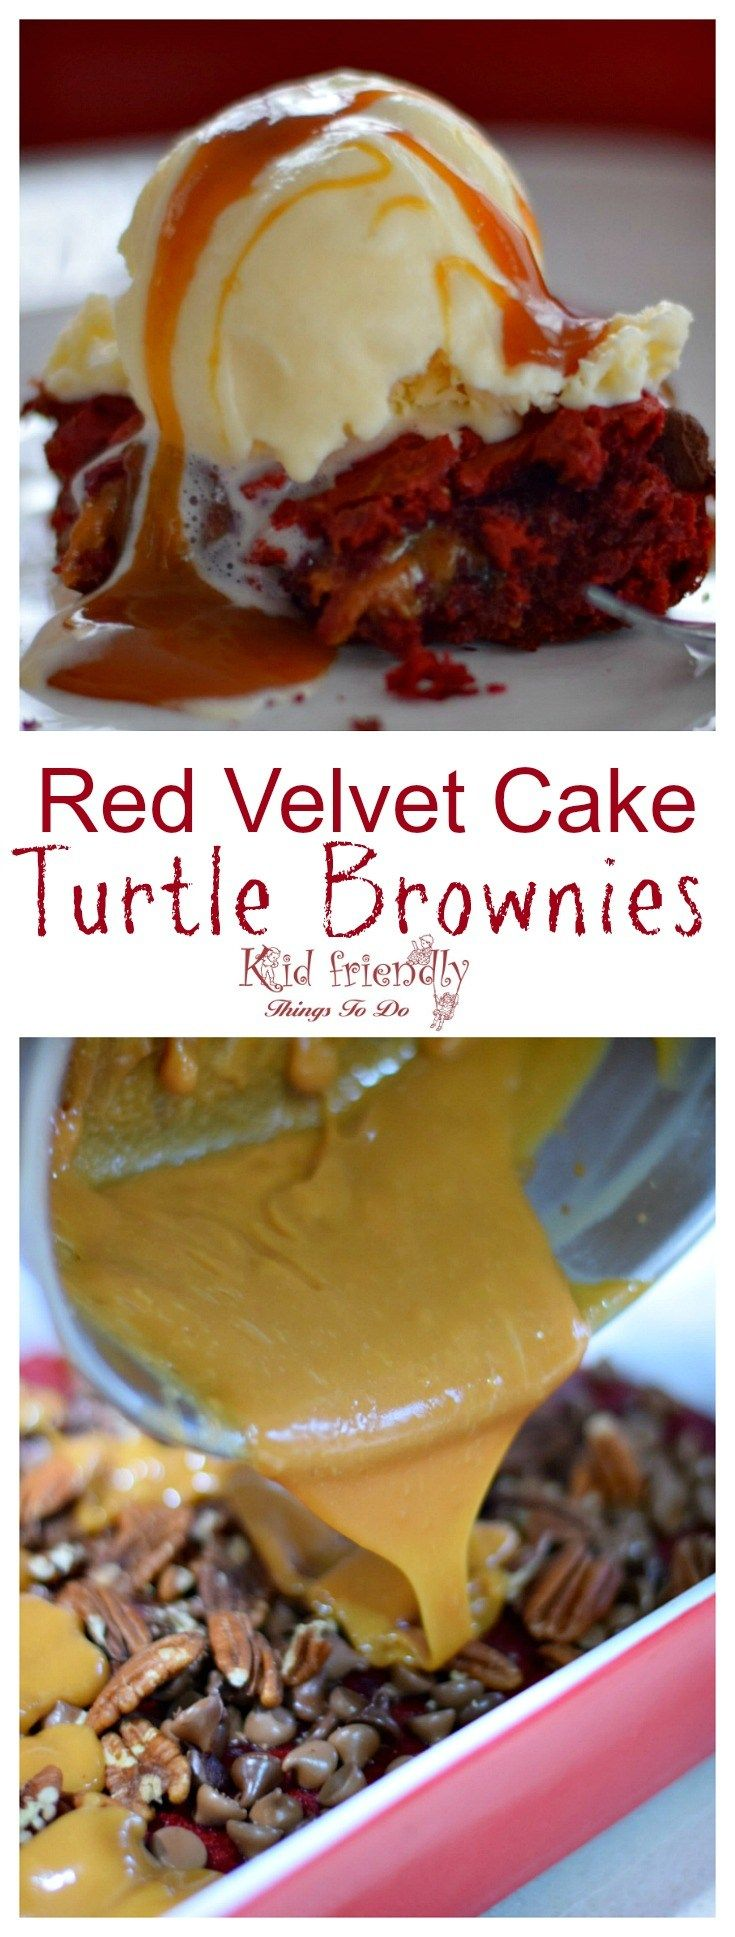 Red Velvet Cake Turtle Brownie Recipe with Red Velvet Cake Box Mix - Oozing Caramel, Easy and delicious! www.kidfriendlythingstodo.com